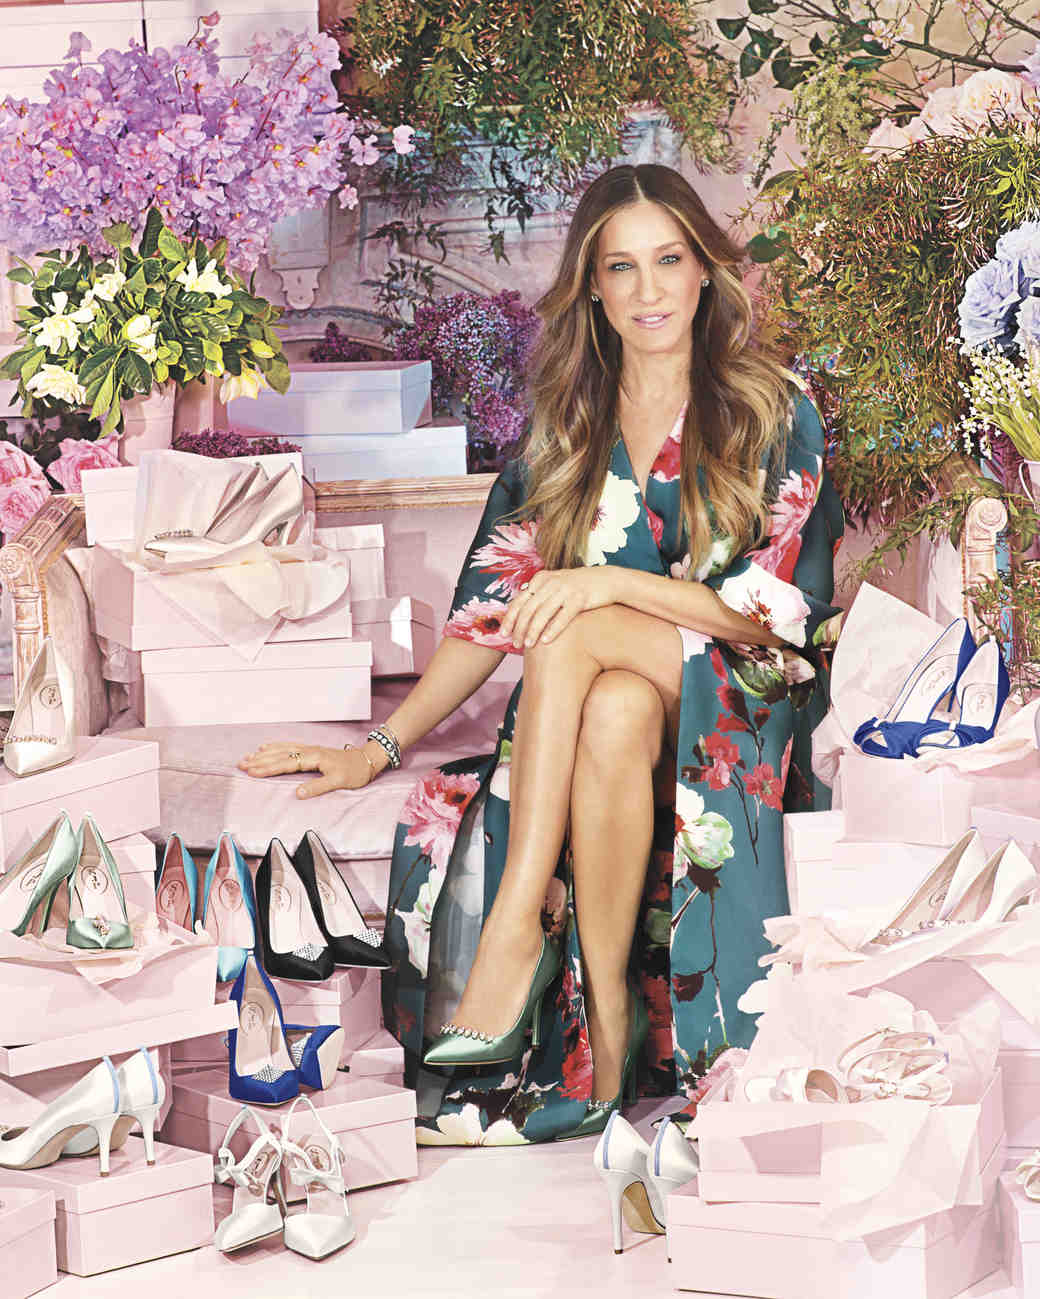 b1a36814abcf Sarah Jessica Parker Puts Her Best Foot Forward With Her New Collection of  Shoes Designed Just for Brides